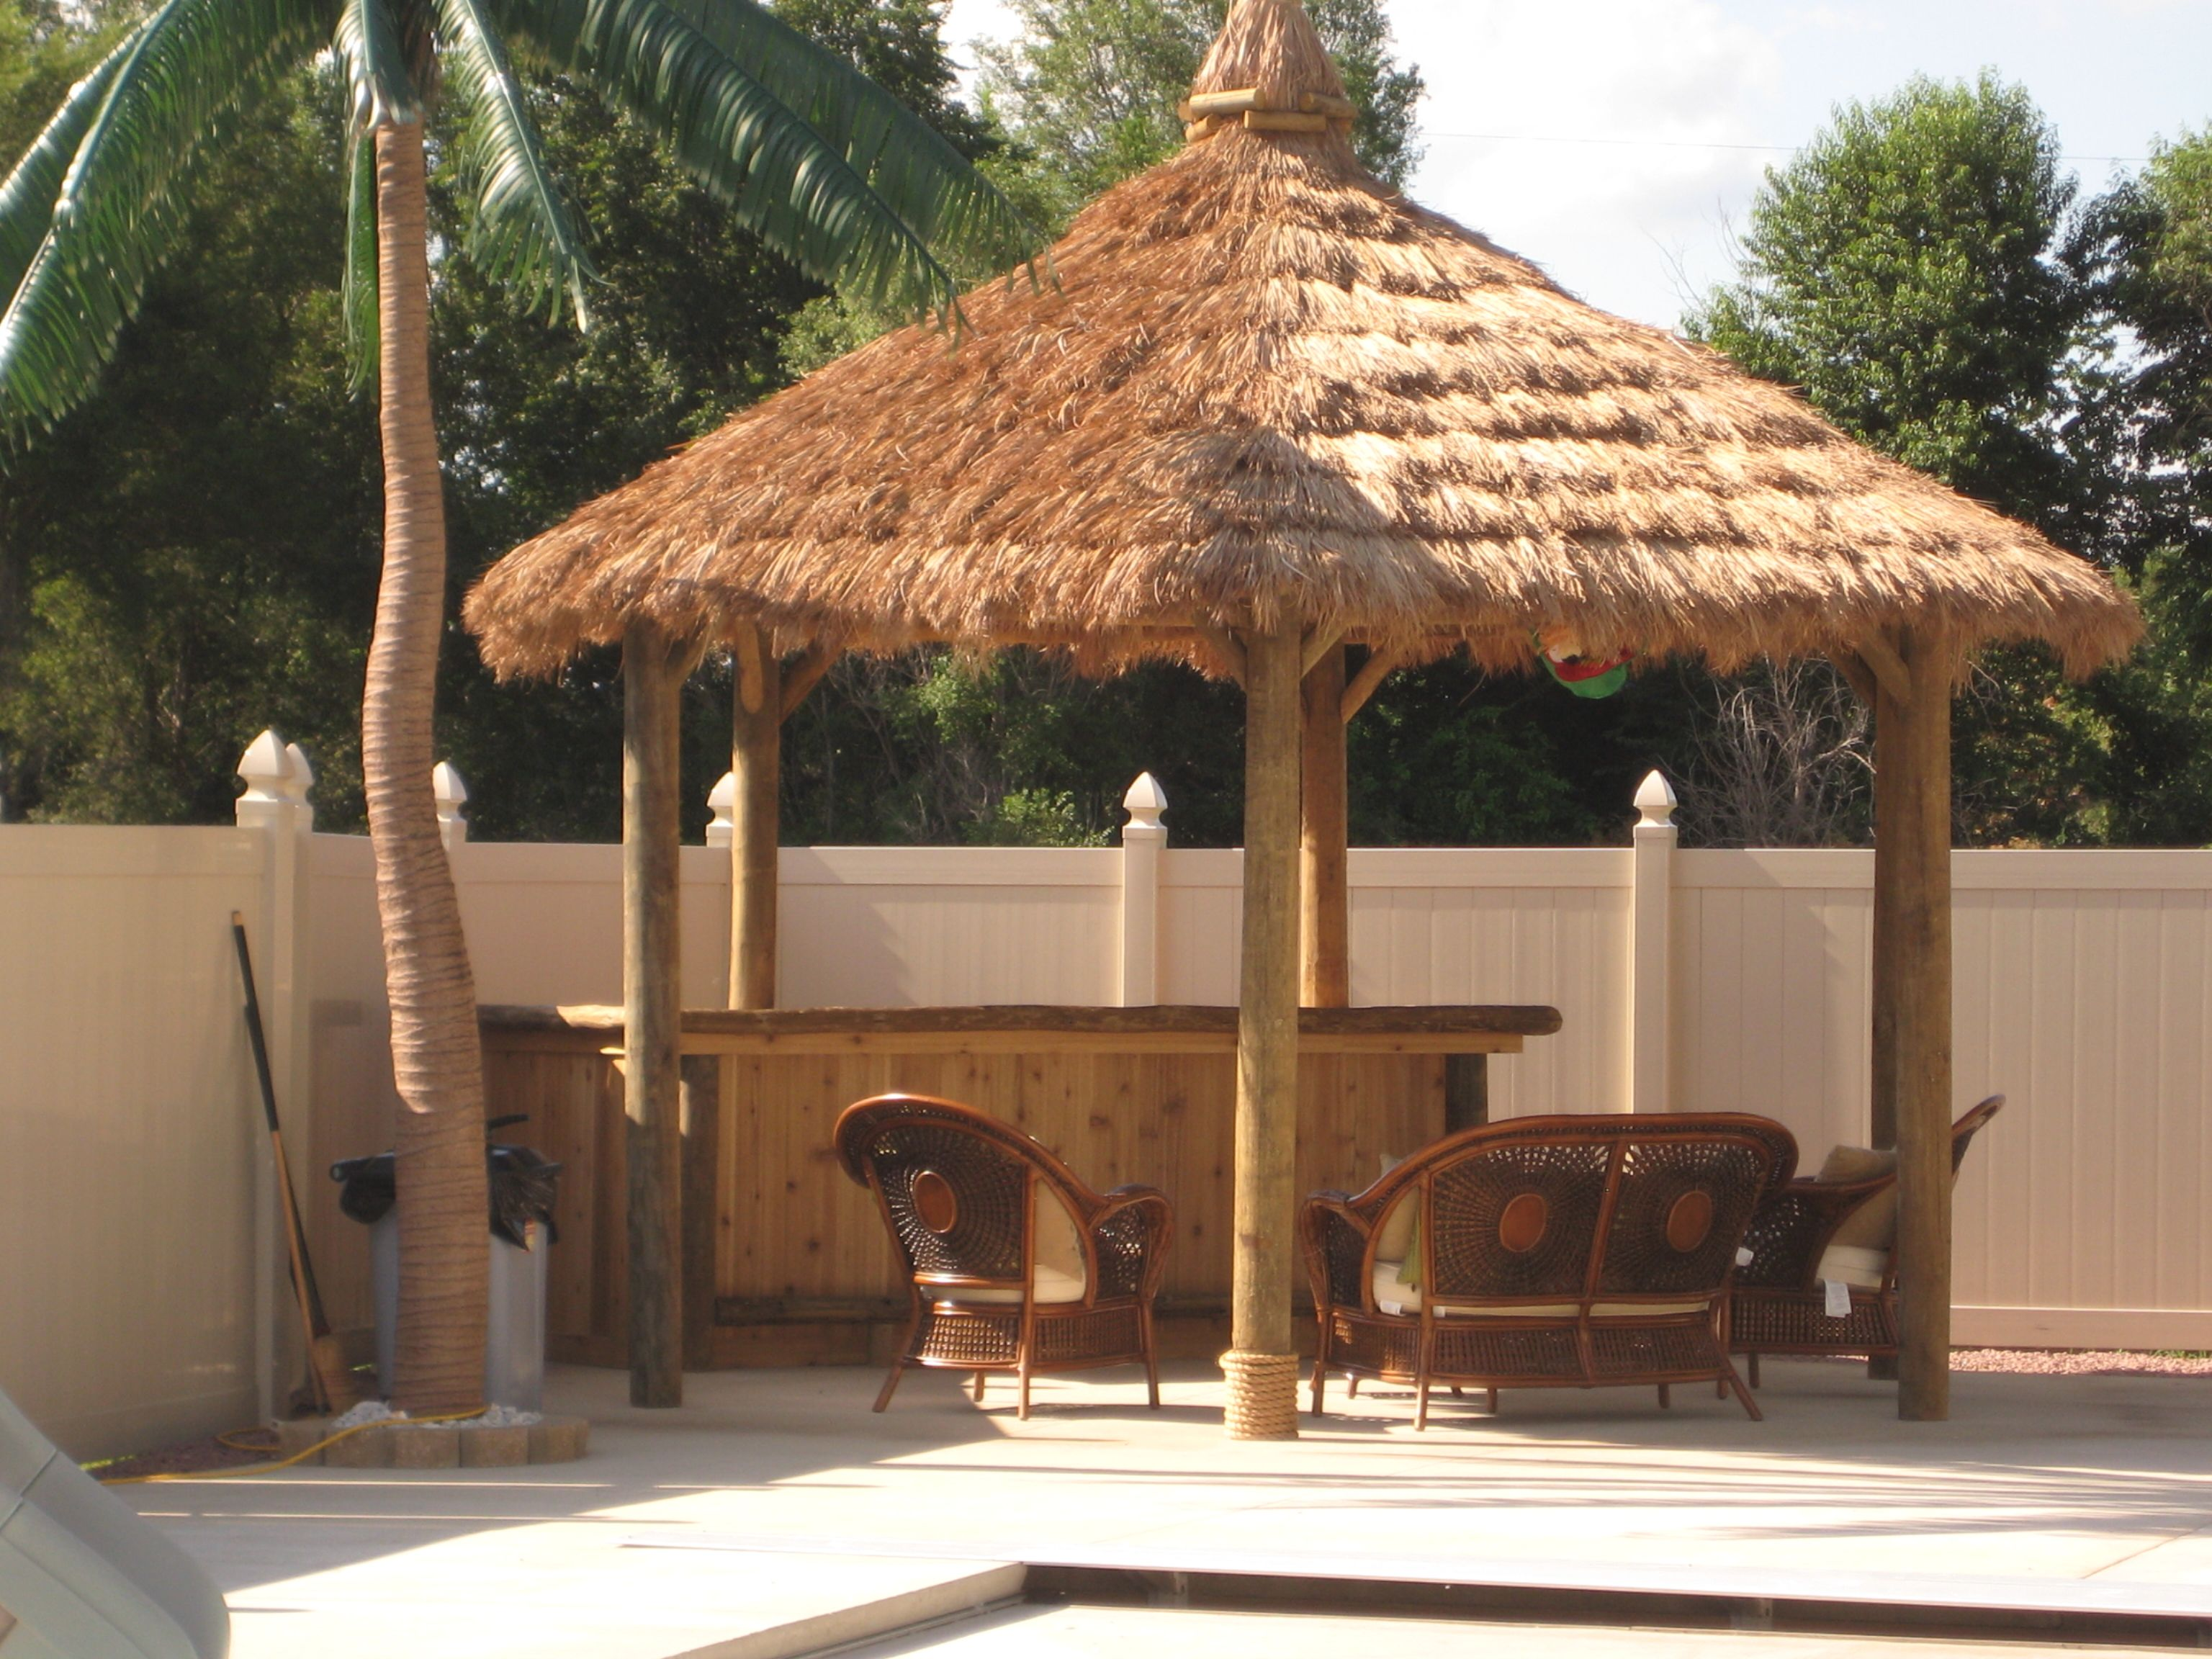 High Quality Tiki Hut Kits Back Yard | DIY Build Your Own Tiki Hut And Tiki Bar Kit